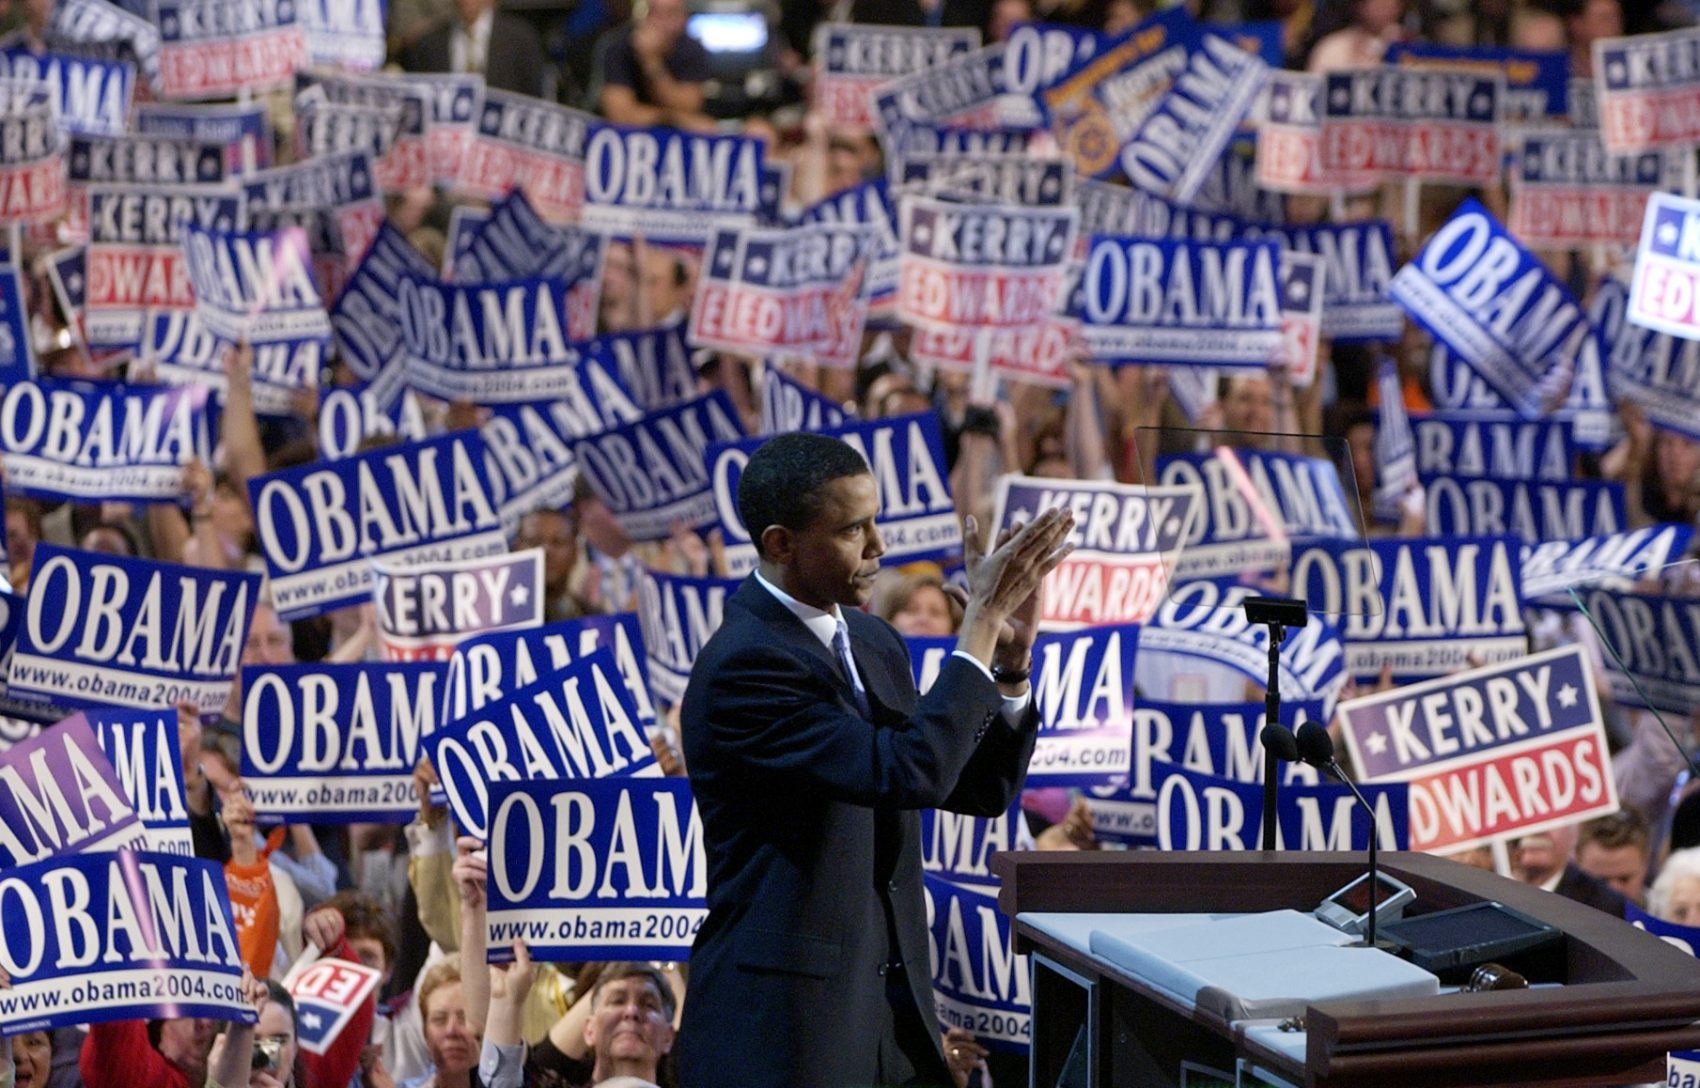 Barack Obama, then-candidate for the Senate from Illinois, speaks to delegates during the Democratic National Convention at the FleetCenter in Boston on July 27, 2004. (Charlie Neibergall/AP)